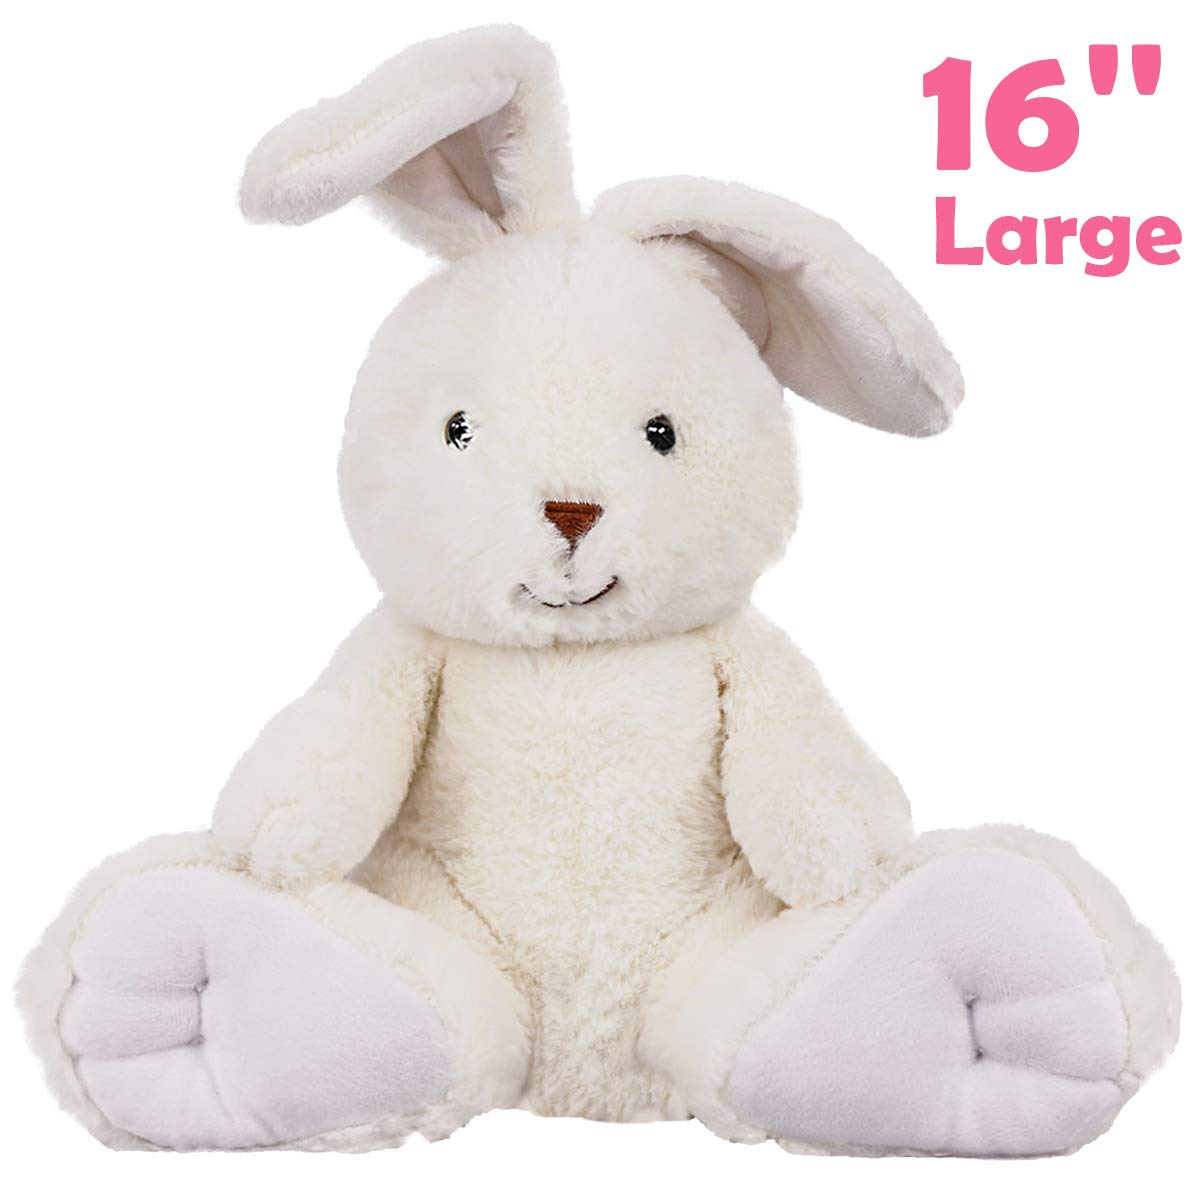 Ivenf Easter Bunny Stuffed Animal 16'' Tall, Large Plush Rabbit Baby Toy for Boys Girls Kids, Easter Decorations Basket Stuffers Gifts